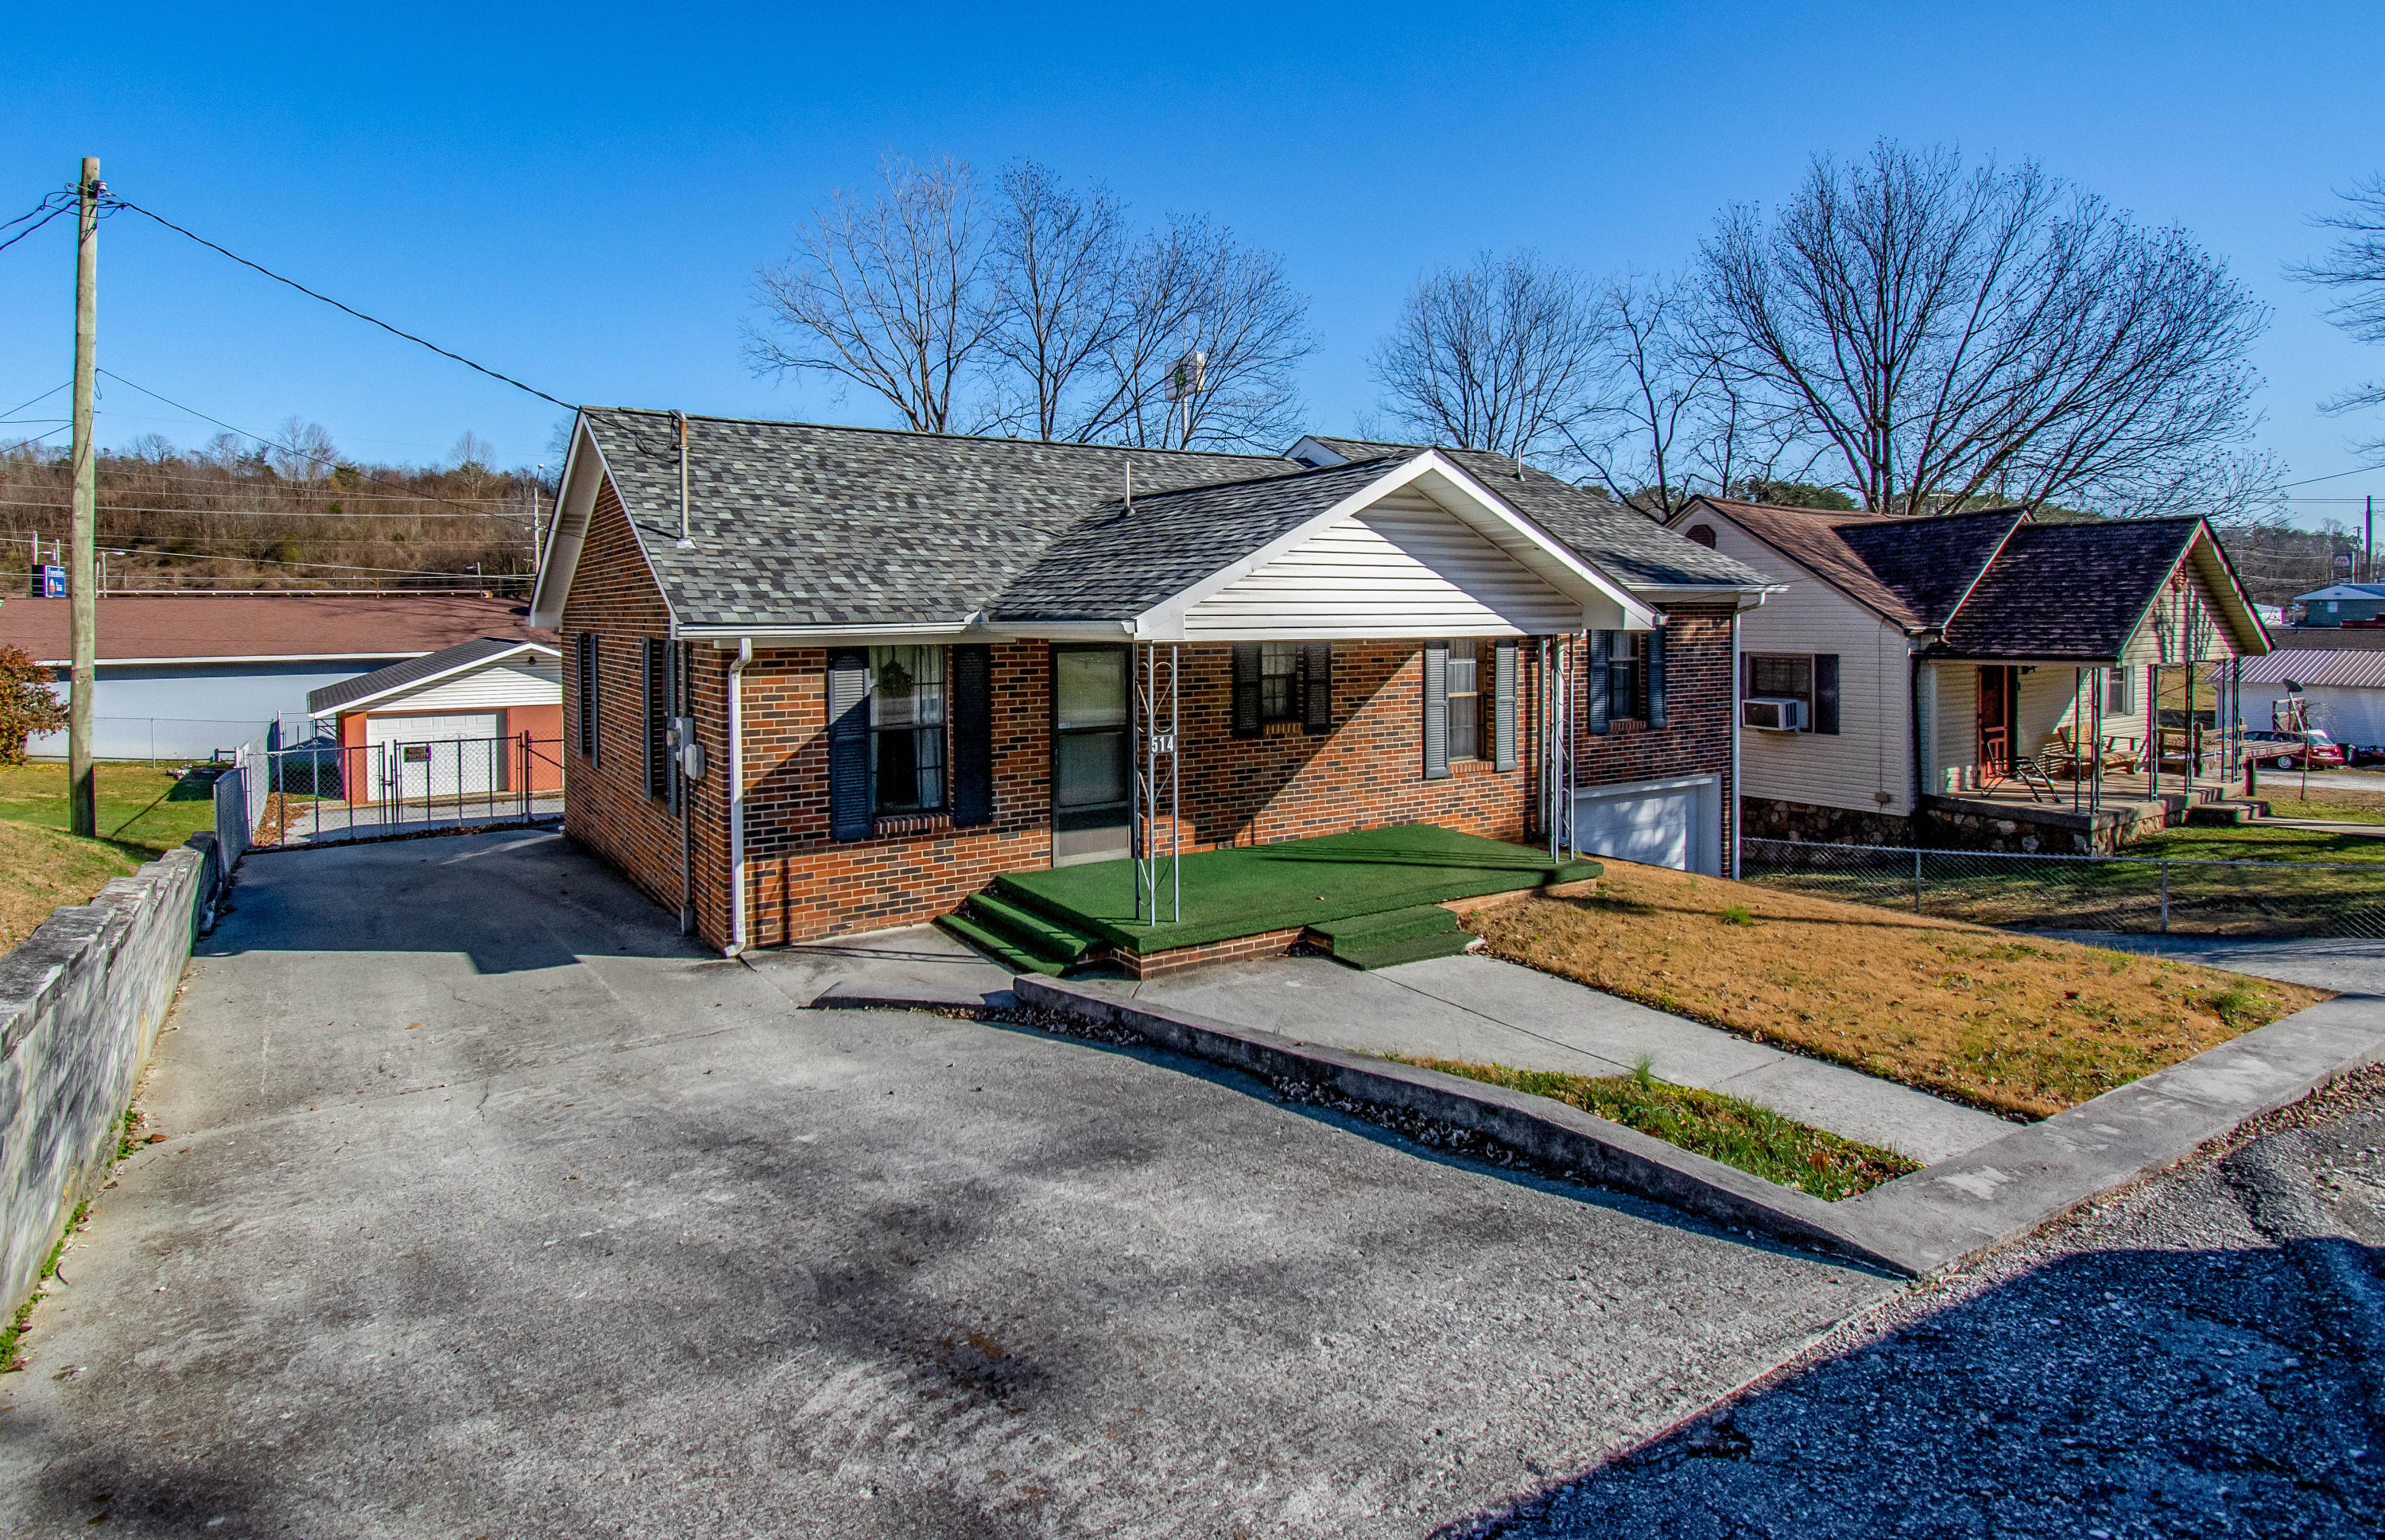 20191211143955827108000000-o Rocky Top anderson county homes for sale